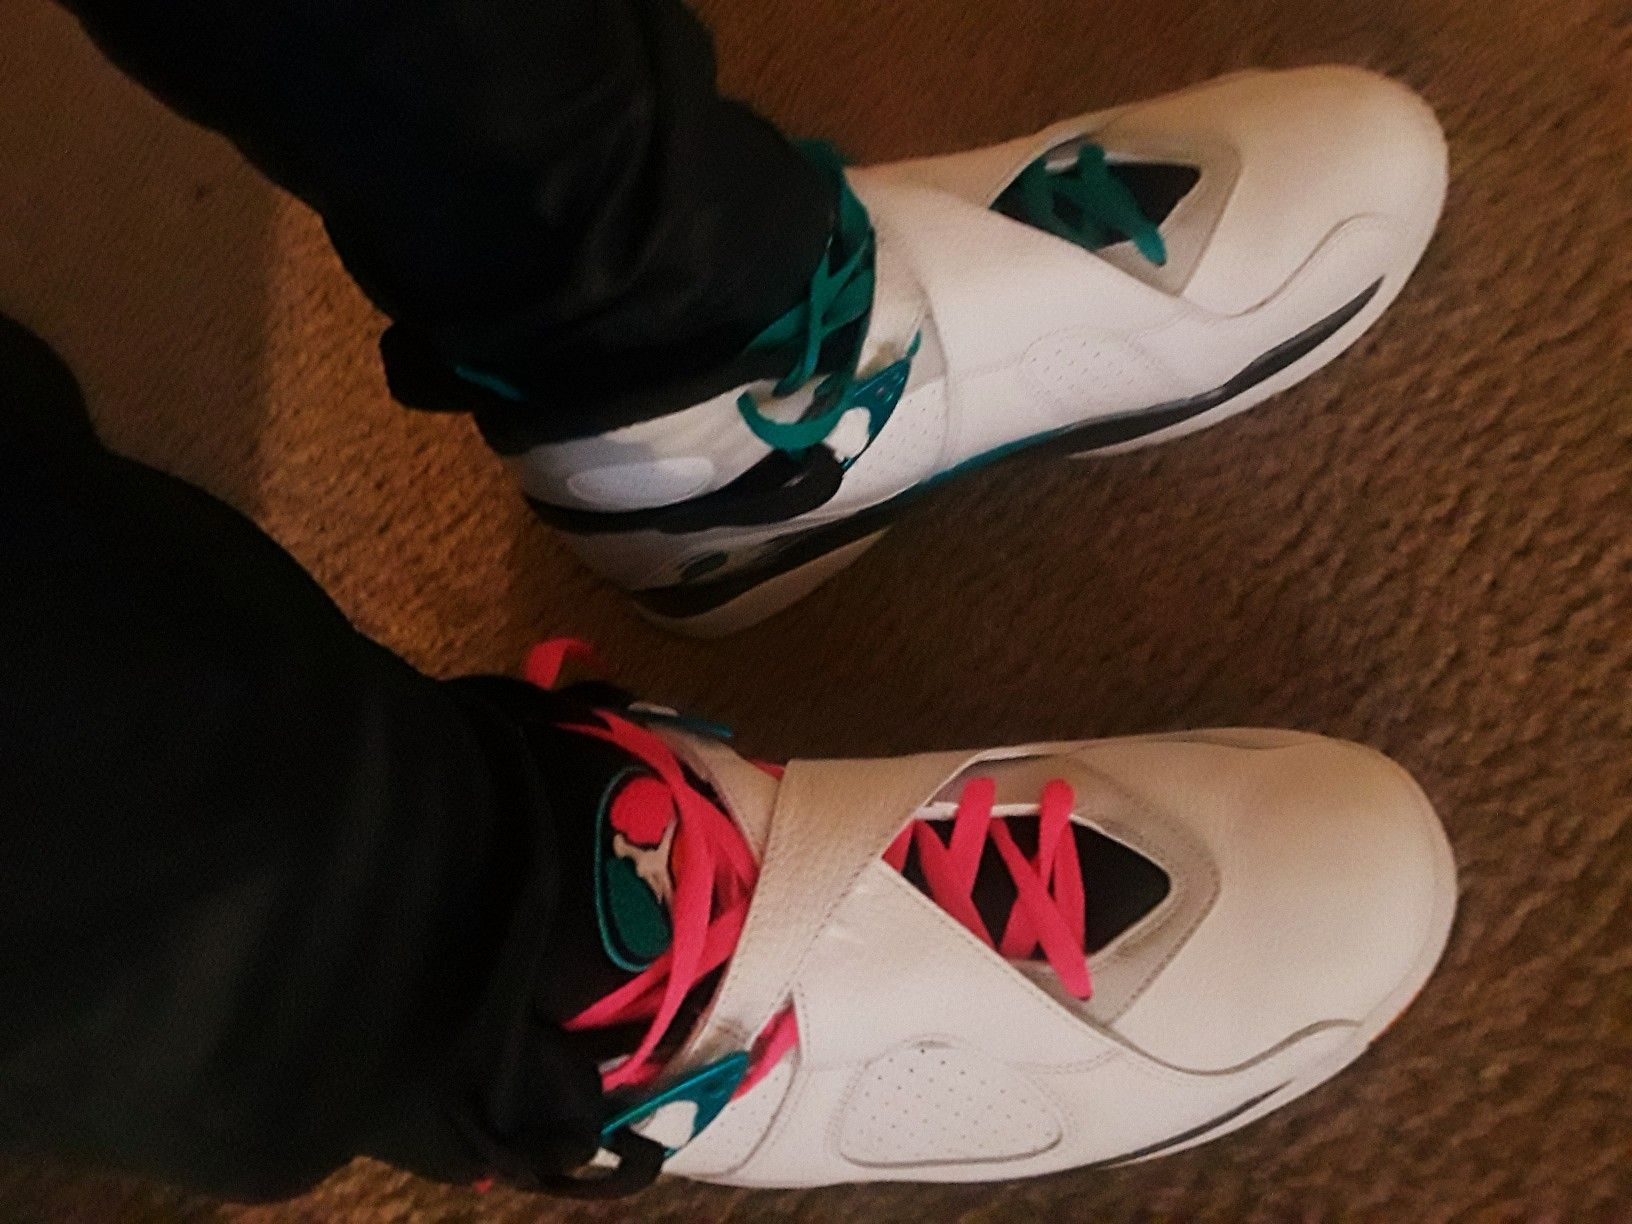 newest 4680c 761ca Here are the just released Jordan 8 Miami dolphins. You can find them at foot  locker.